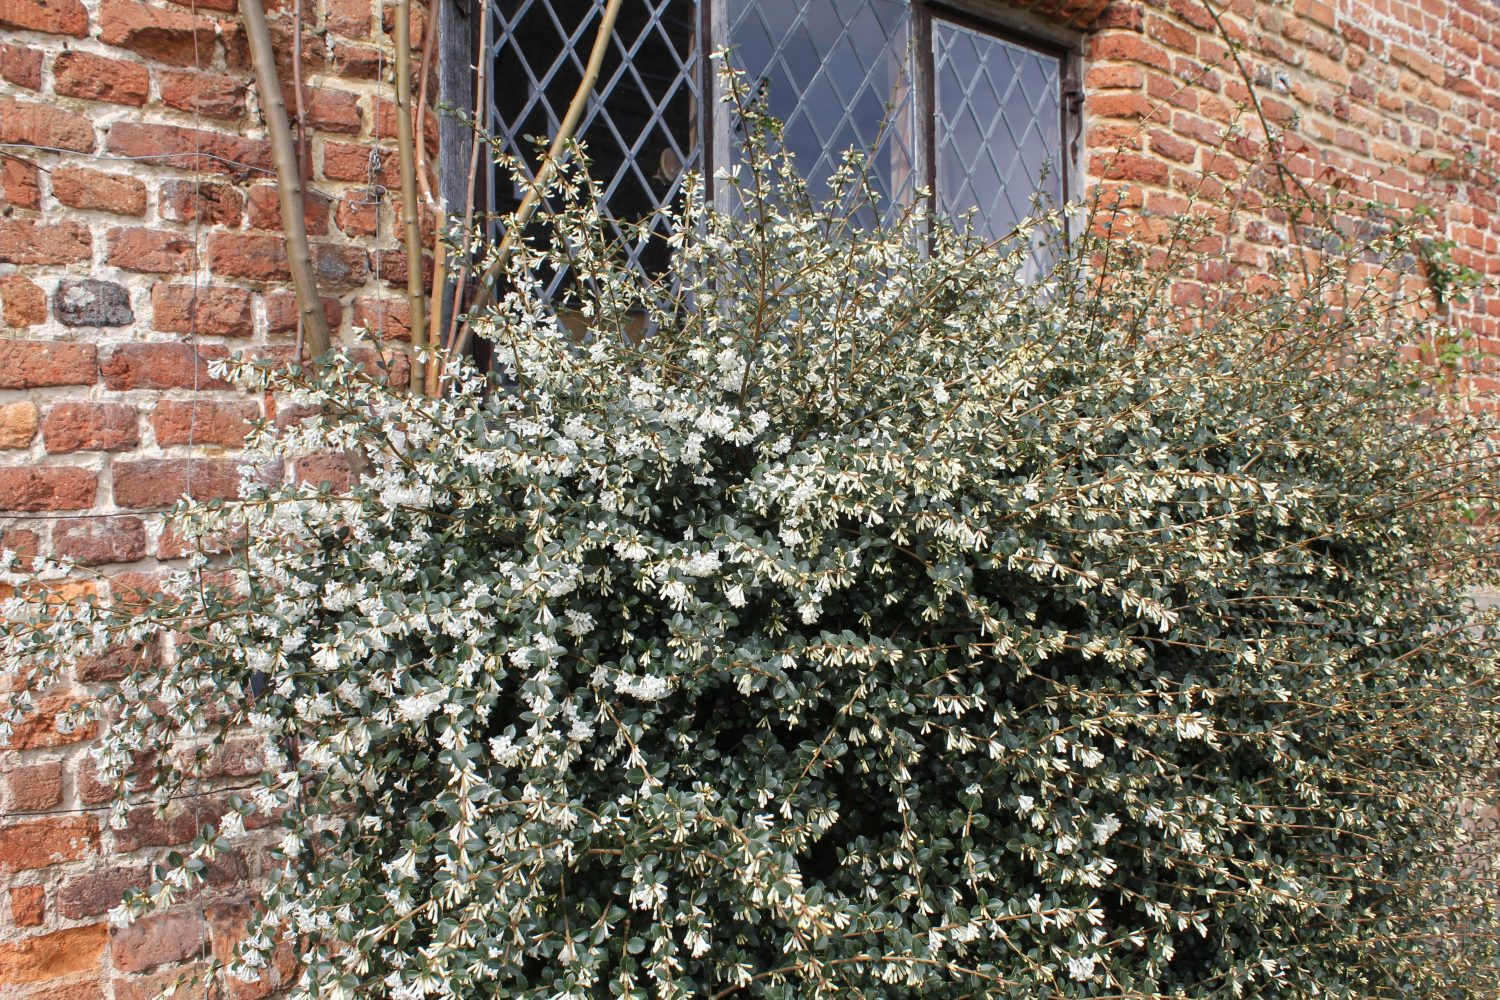 Osmanthus x burkwoodii is an evergreen with small box-like leaves and tiny white flowers that have an intense fragrance